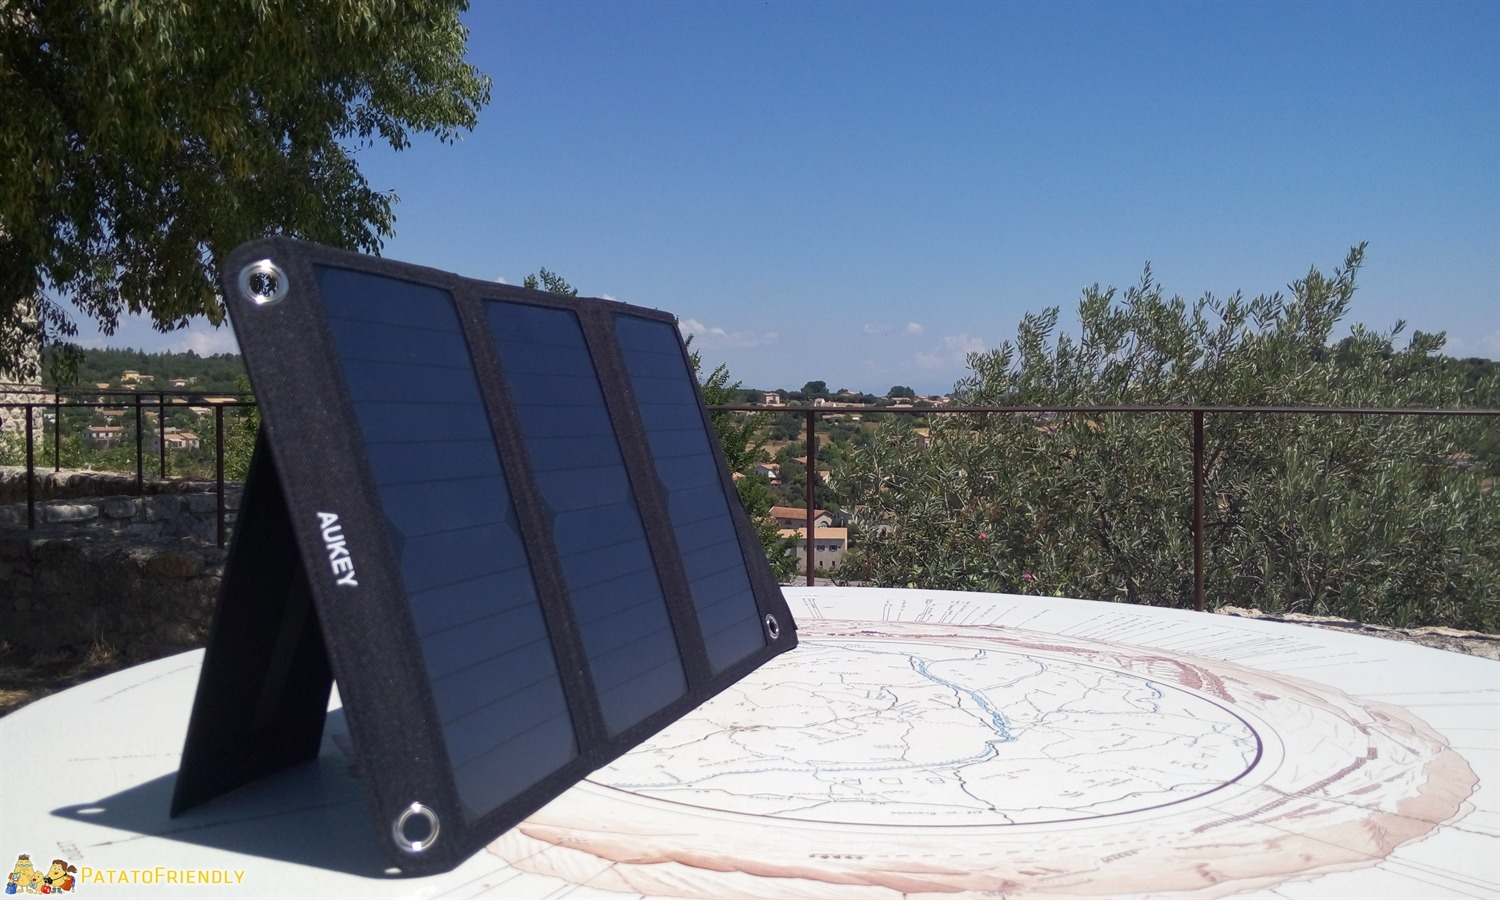 Il caricabatterie solare Aukey